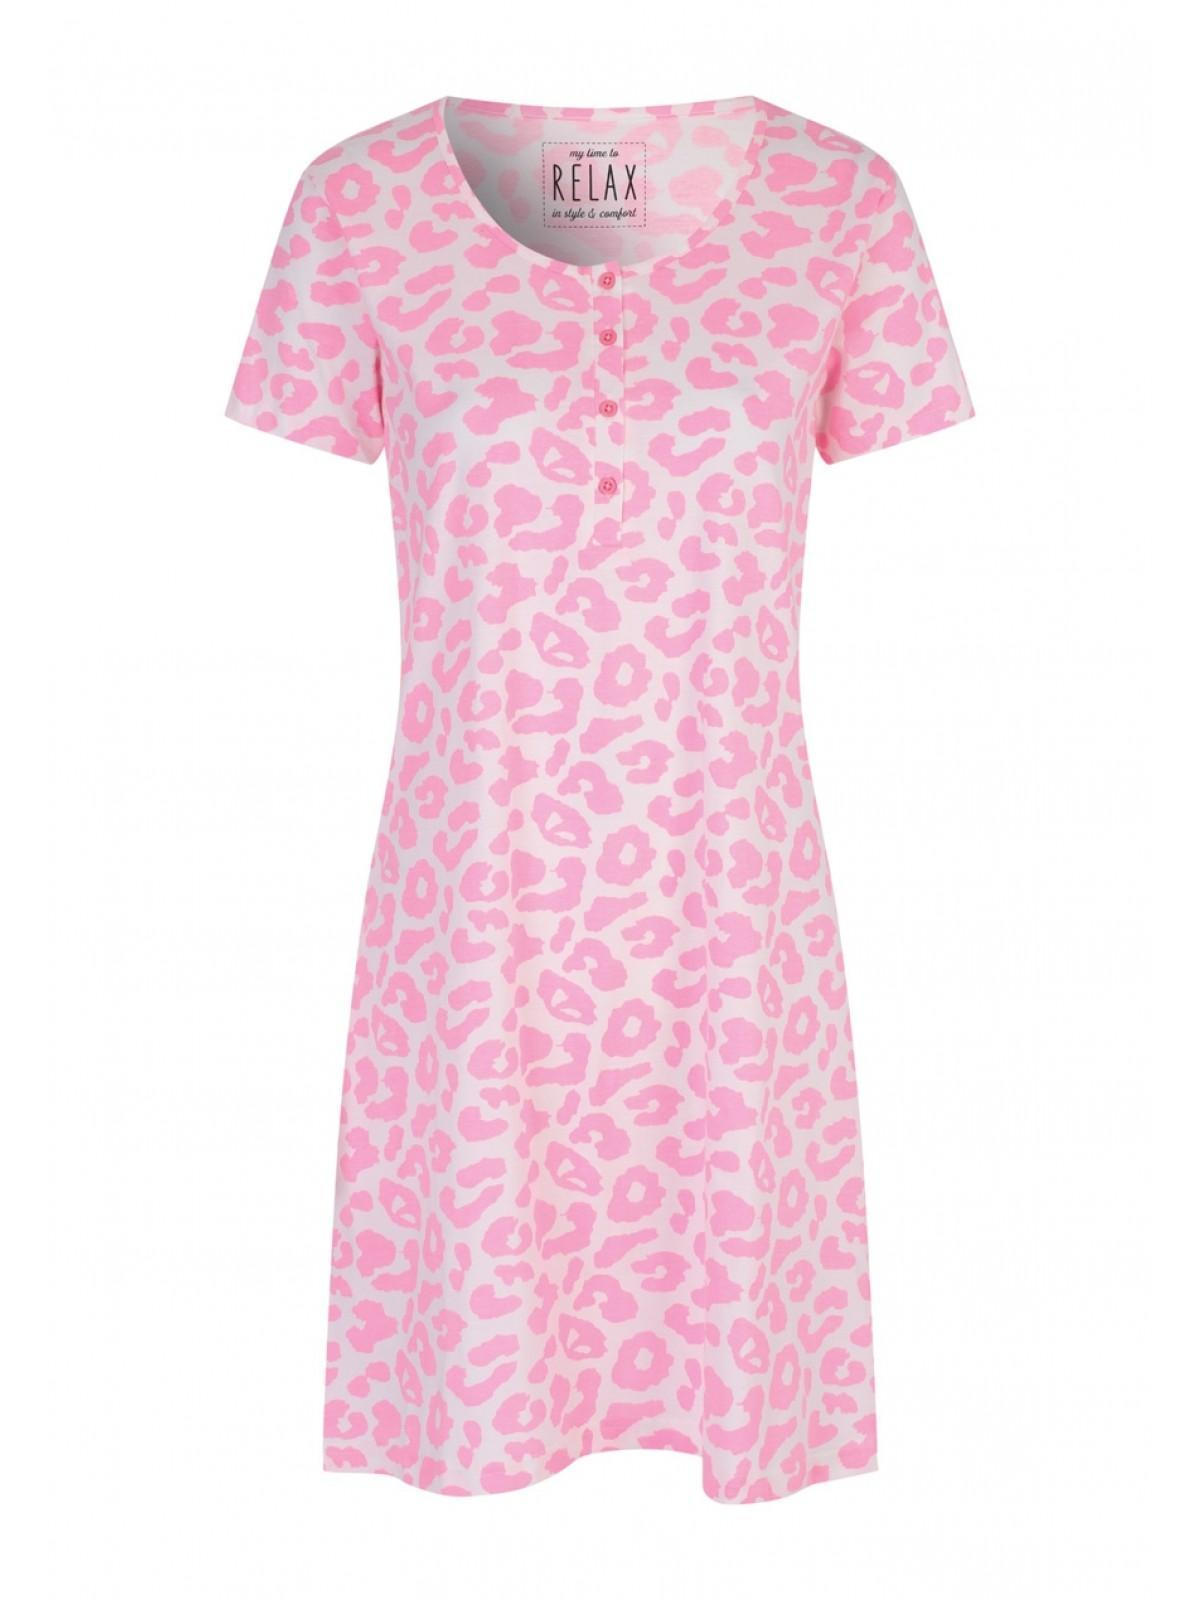 18f0fd1ae350 Home; Womens Pink Leopard Print Nightdress. Back. PreviousNext